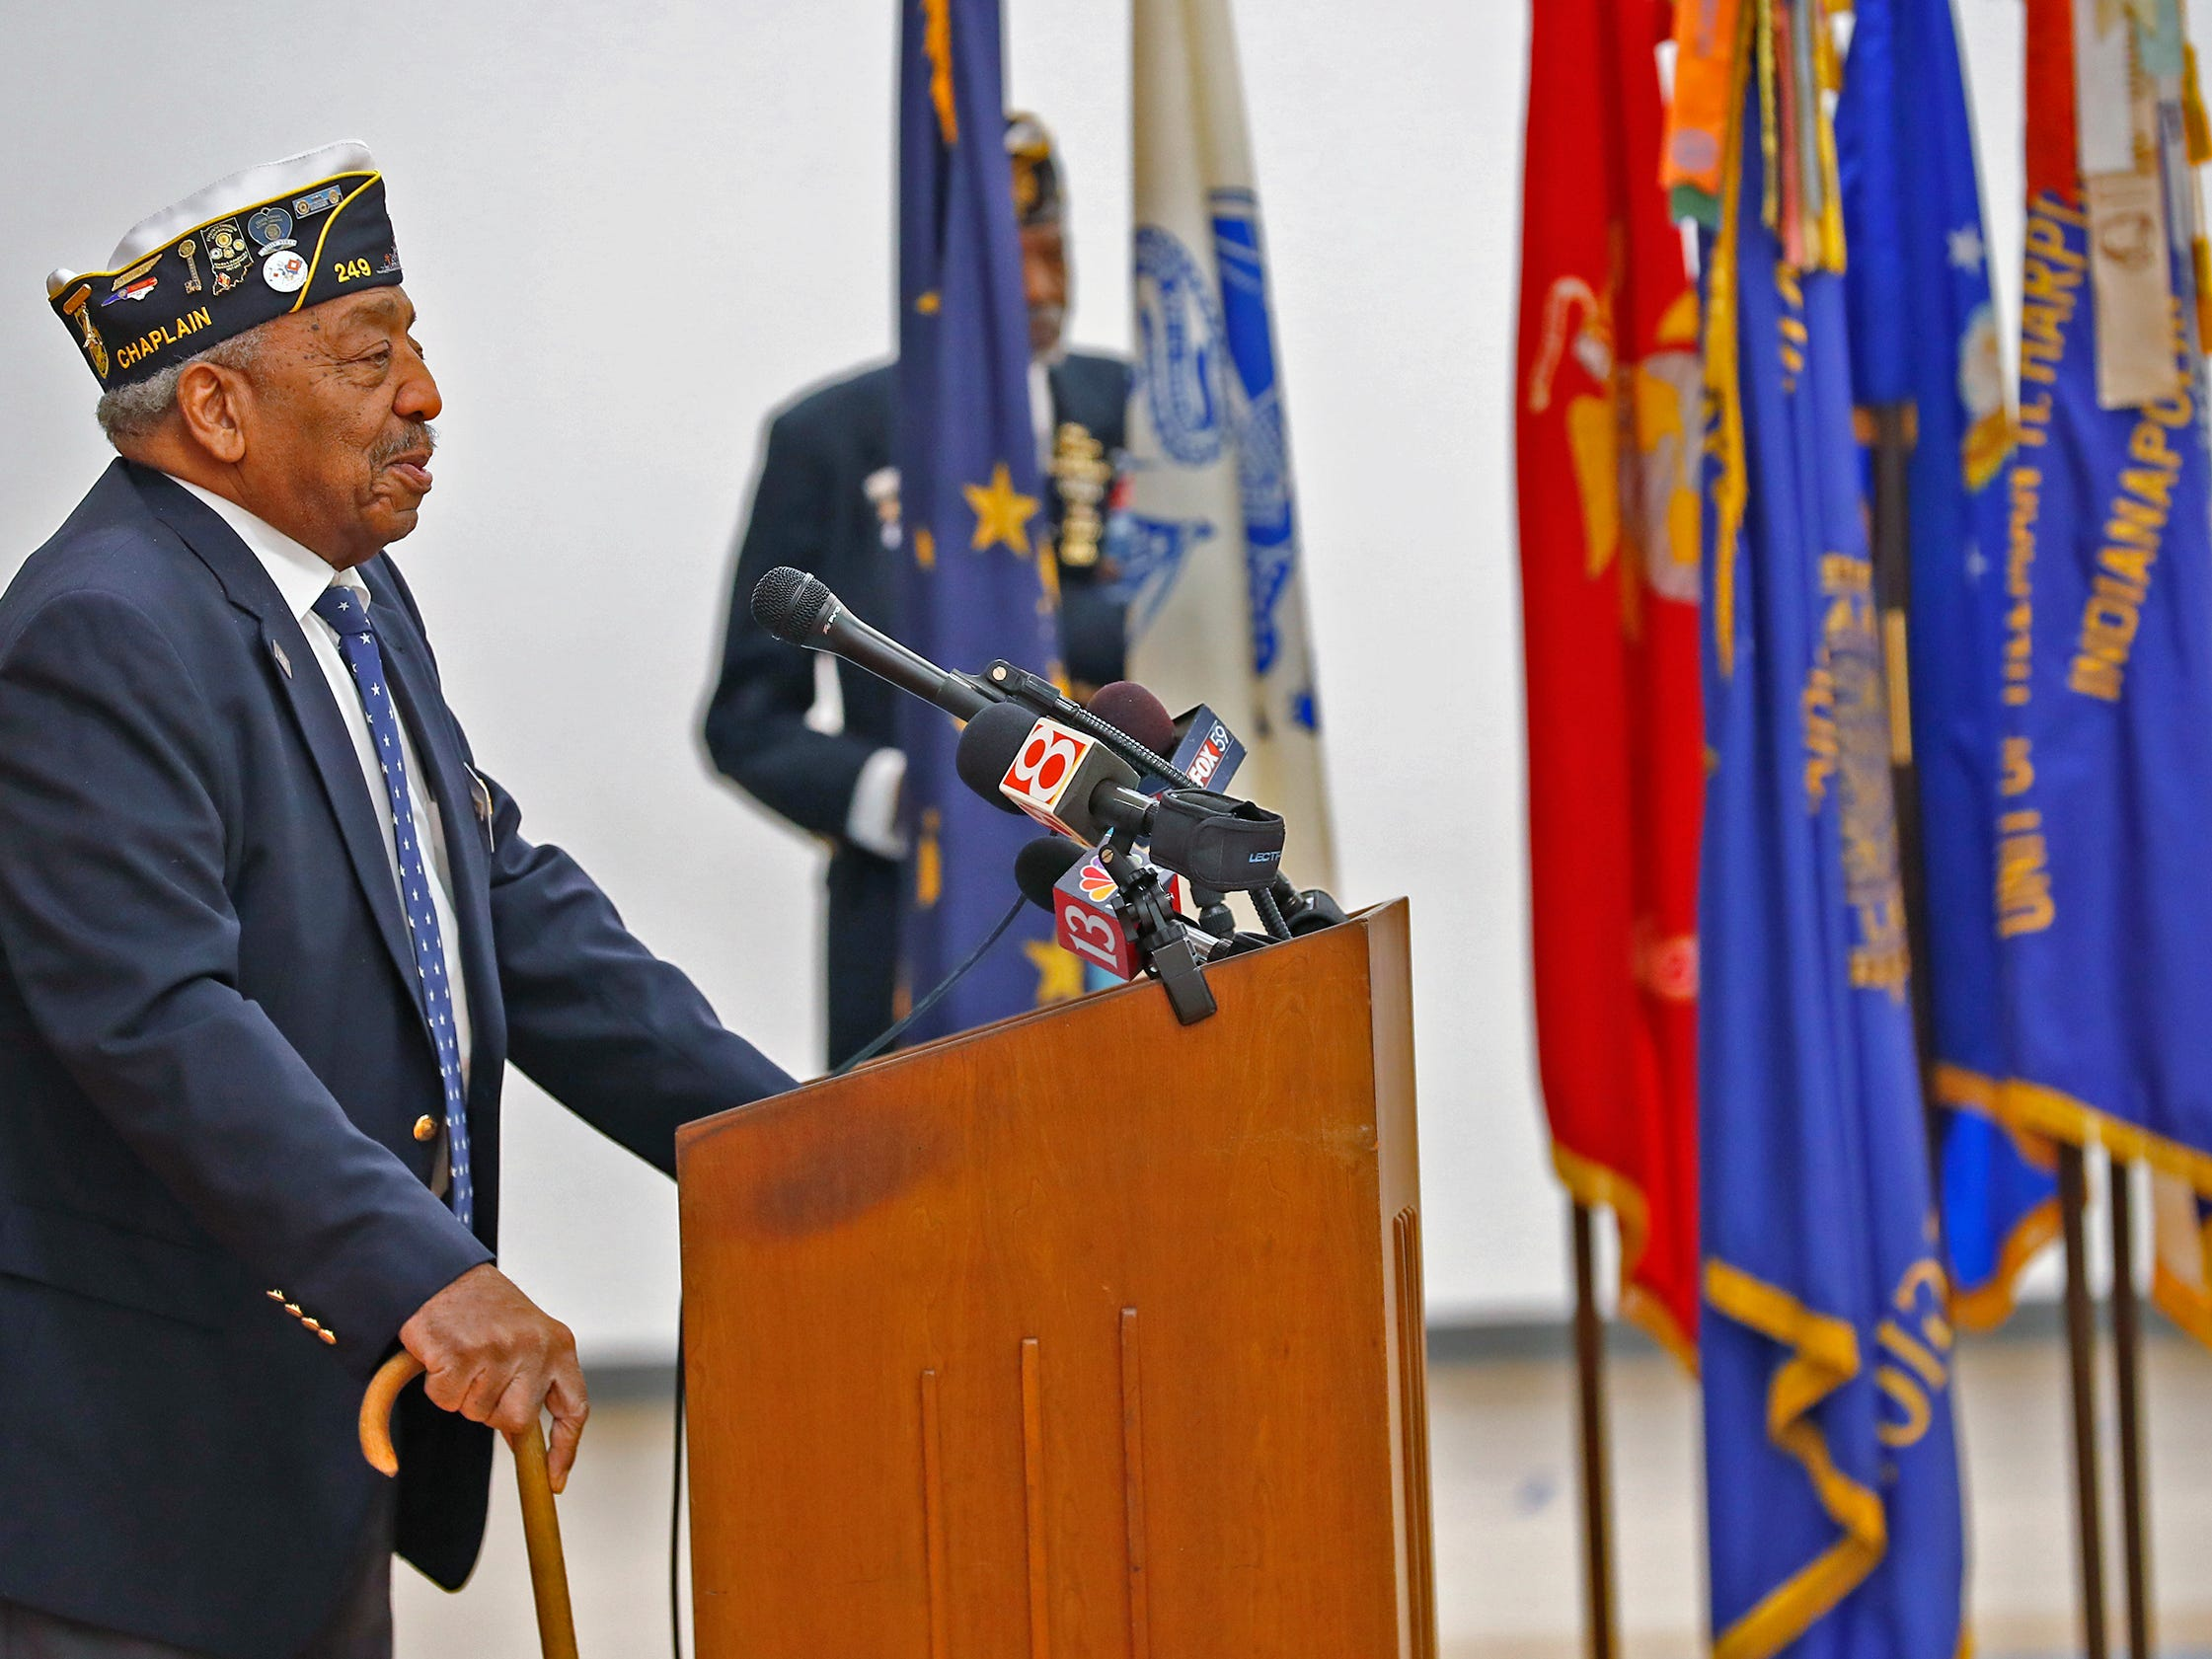 Chaplain of Indiana's 11th District of the American Legion Edward Harris Jr. speaks during the Pearl Harbor Day Remembrance at Riverside High School, Friday, Dec. 7, 2018.  The former Heslar Naval Armory used to host the event to remember those who died and to honor those who survived in the Dec. 7, 1941 Japanese attack on Pearl Harbor which plunged the United States into World War II.